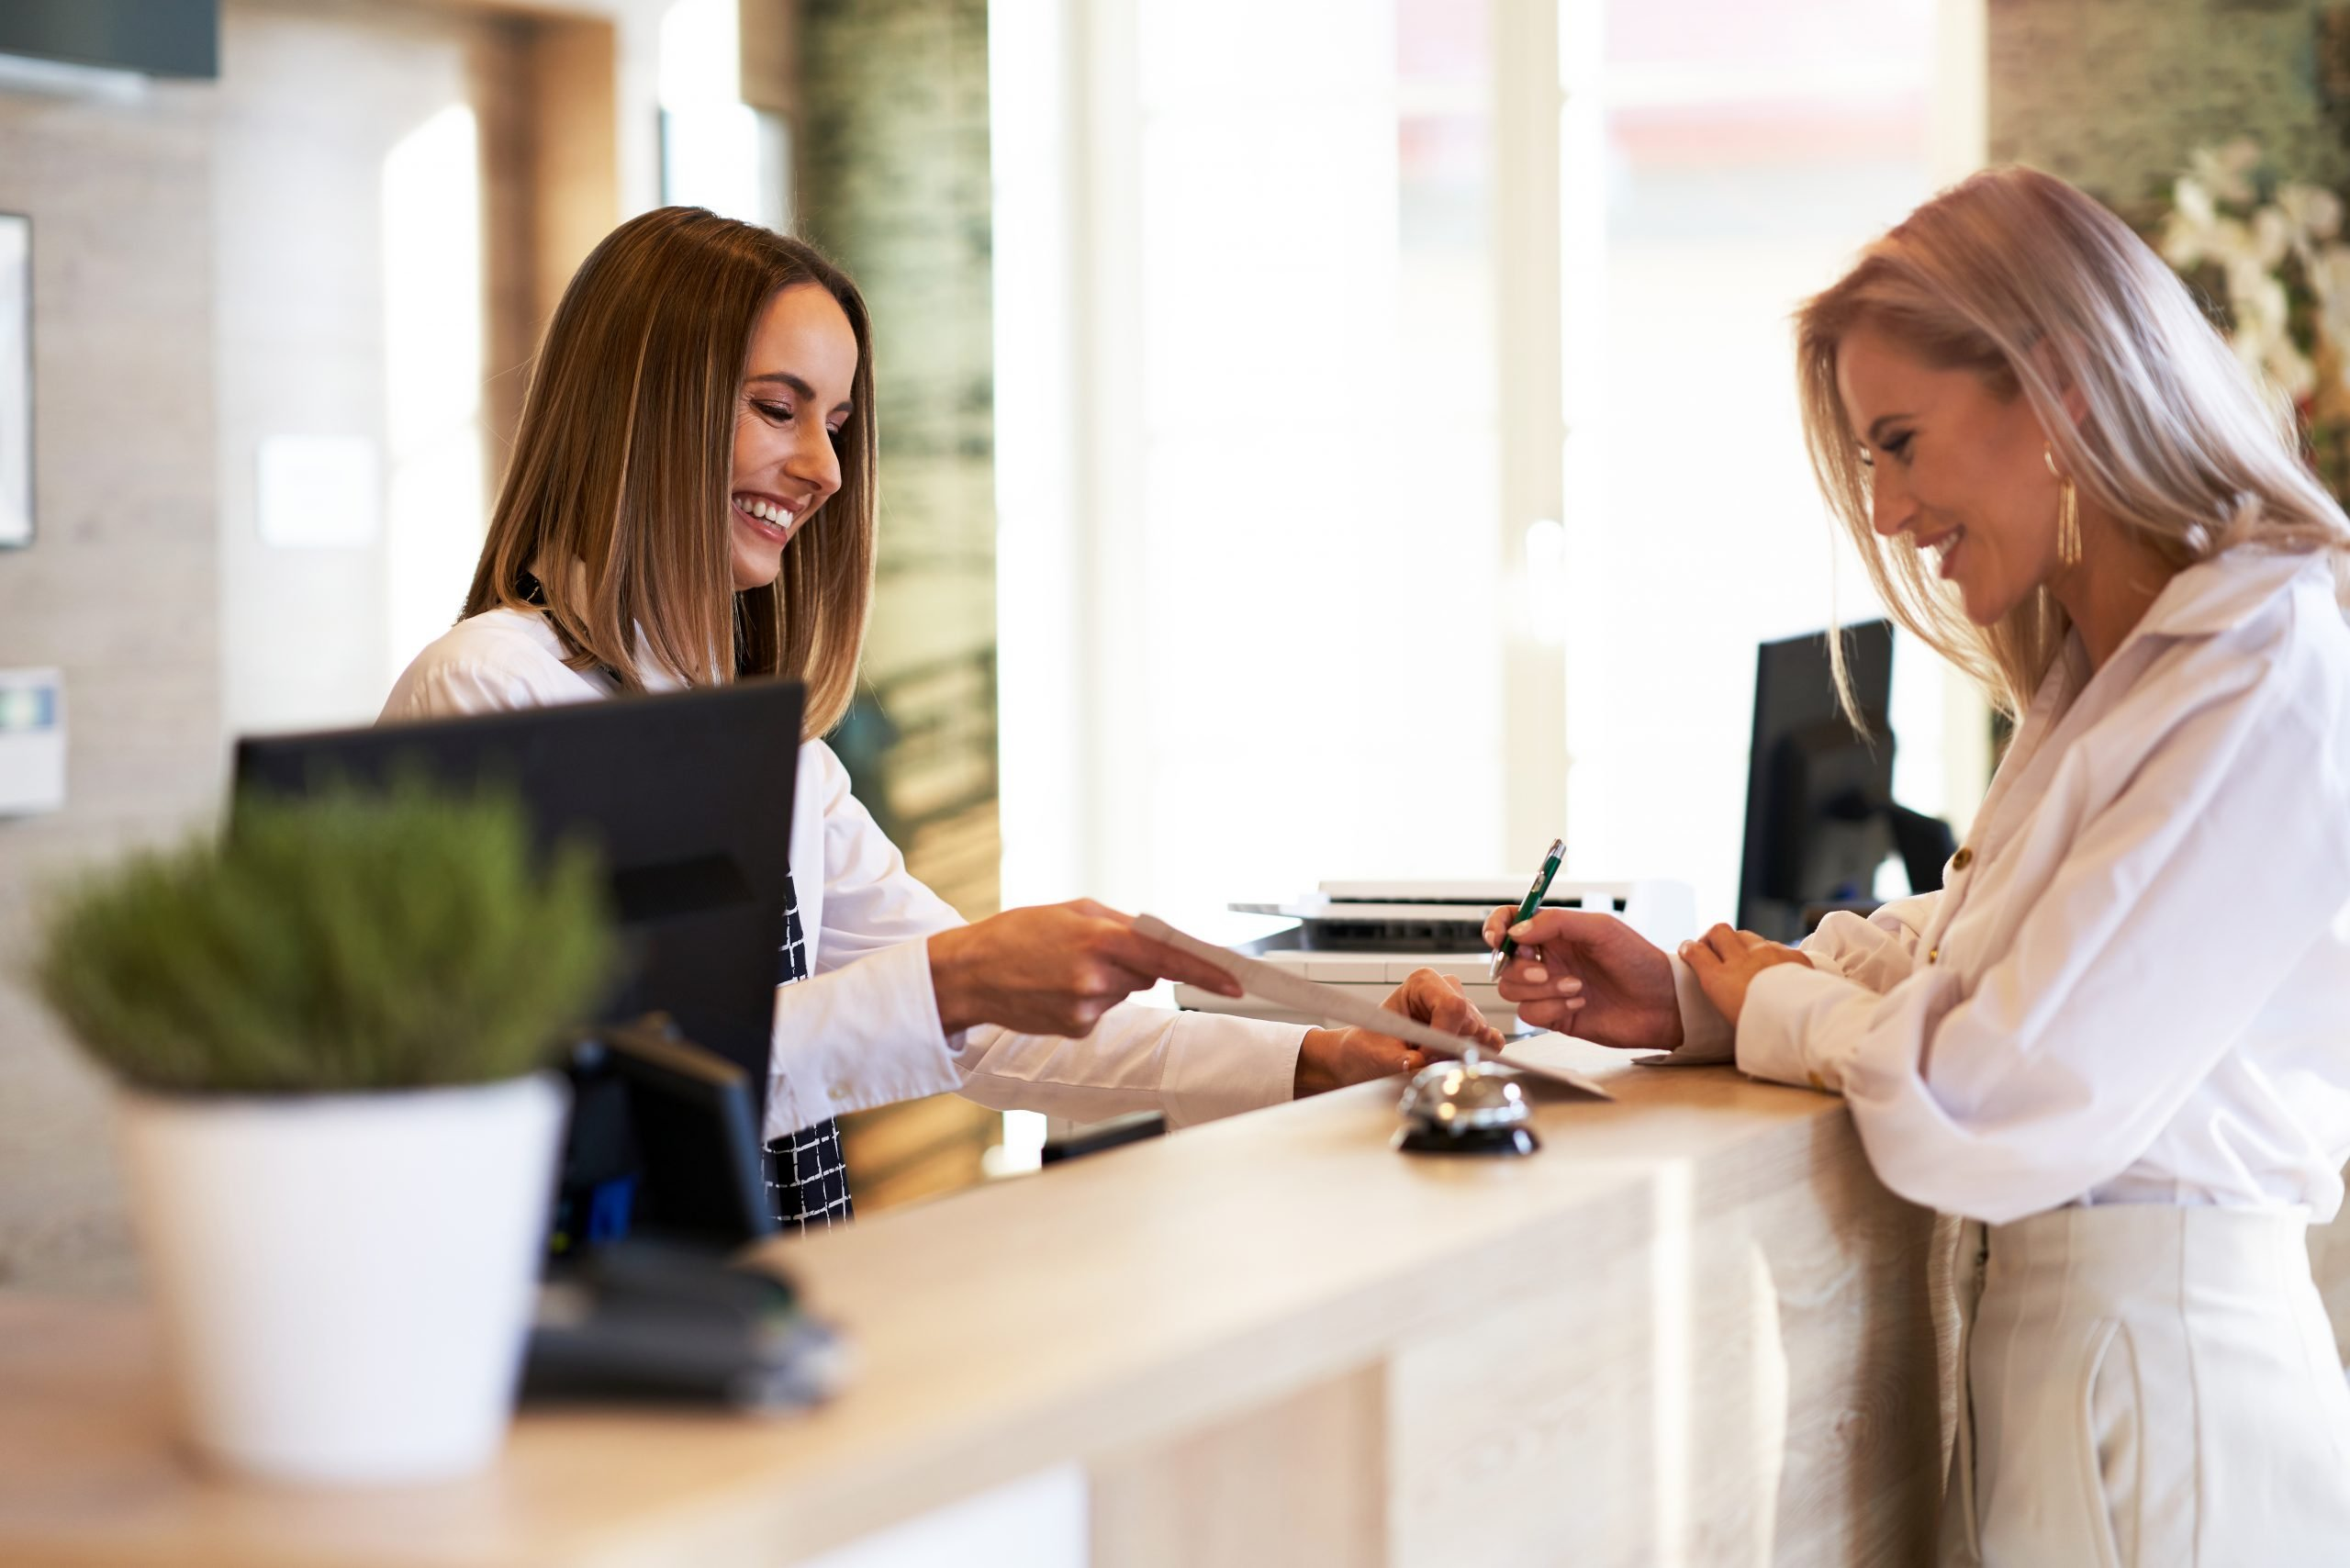 Picture of receptionist and businesswoman at hotel front desk.